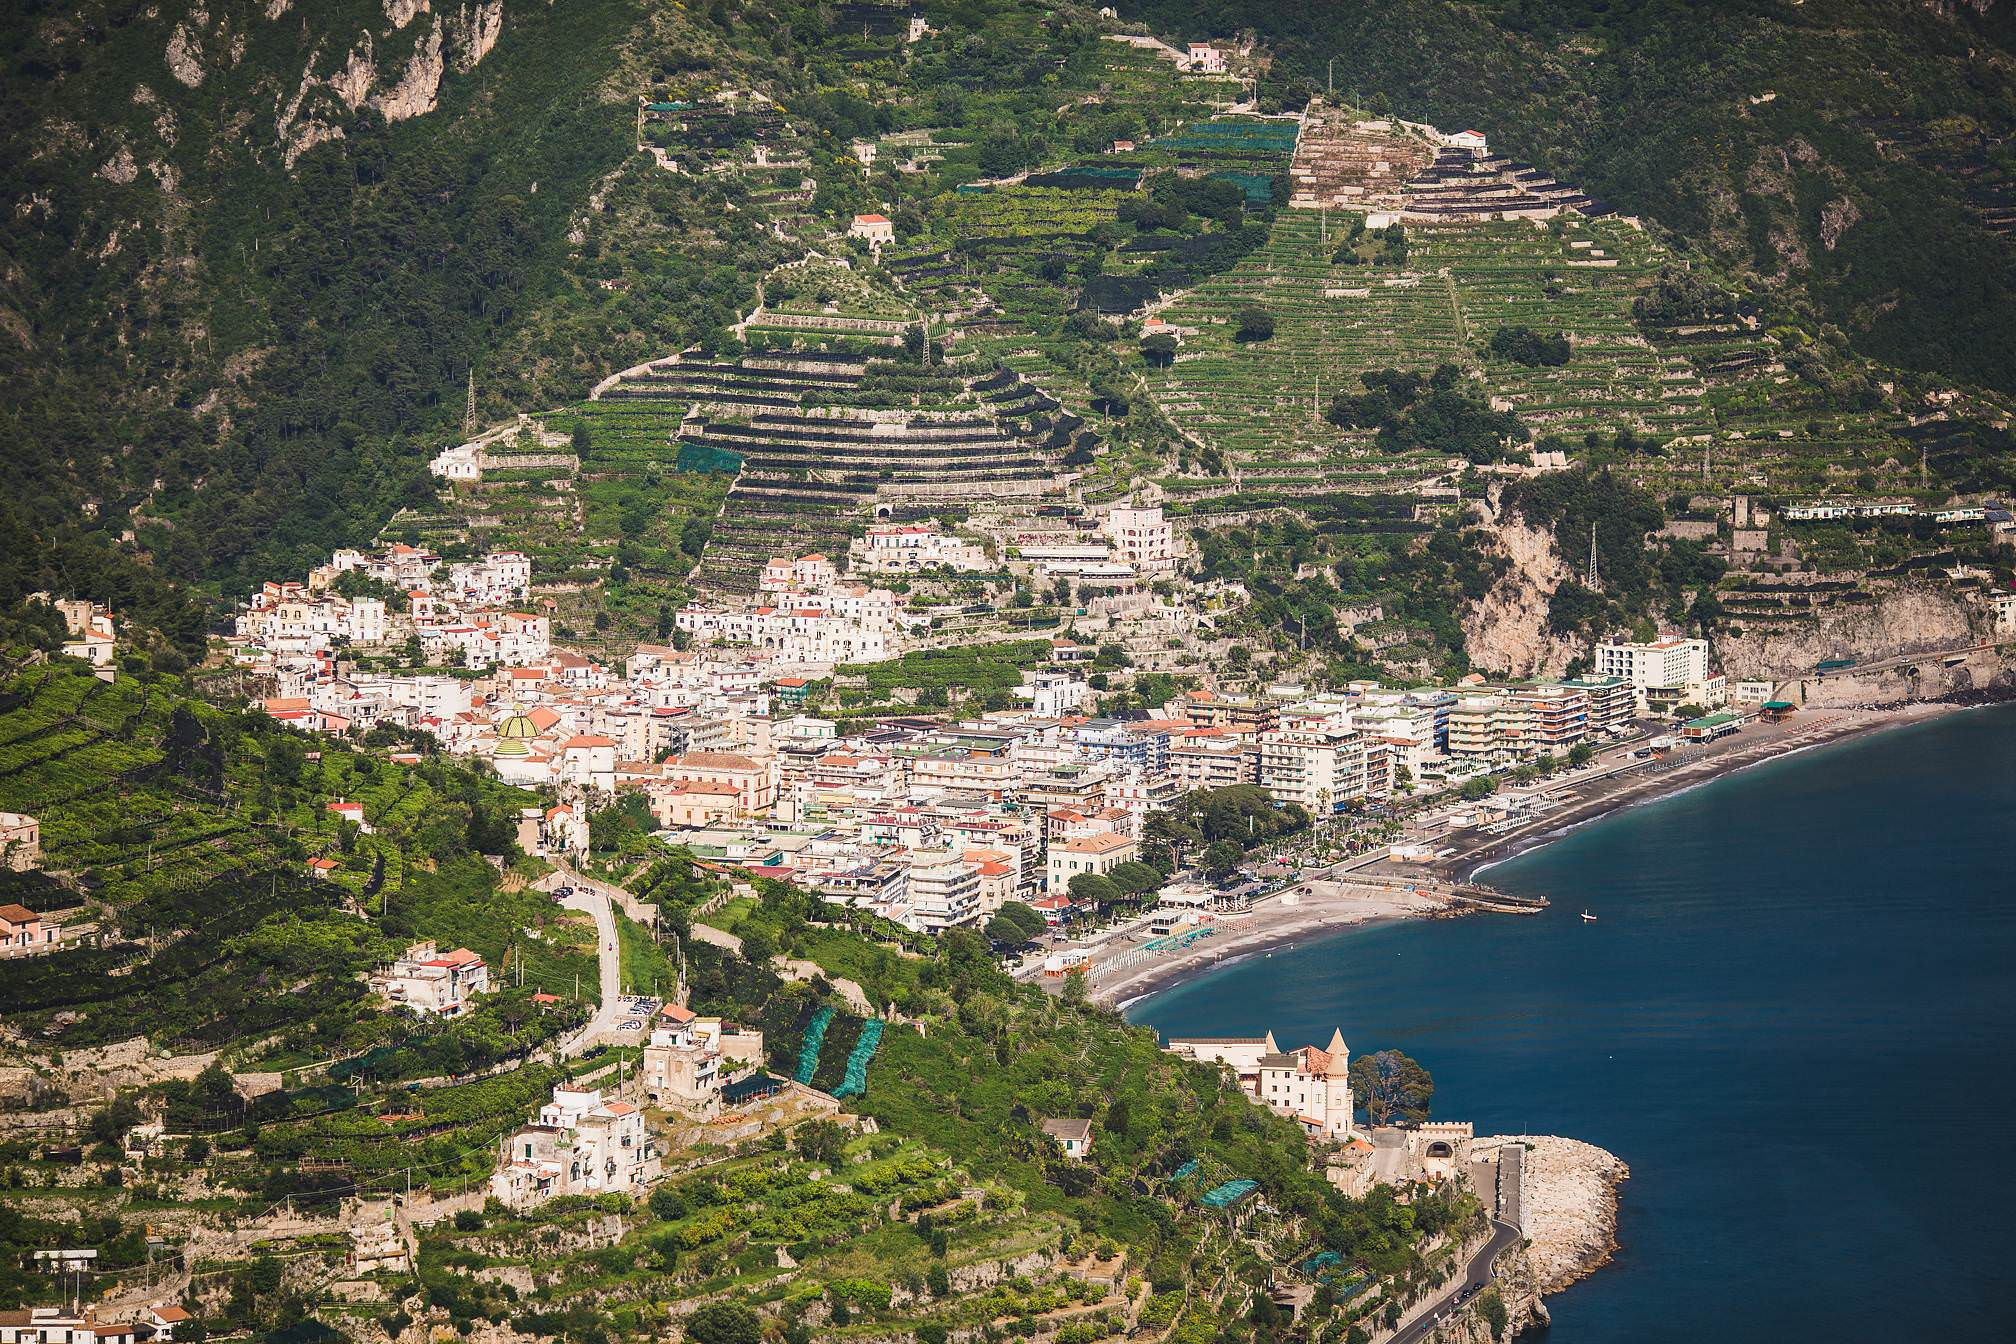 A view looking down onto the Italy Coastline